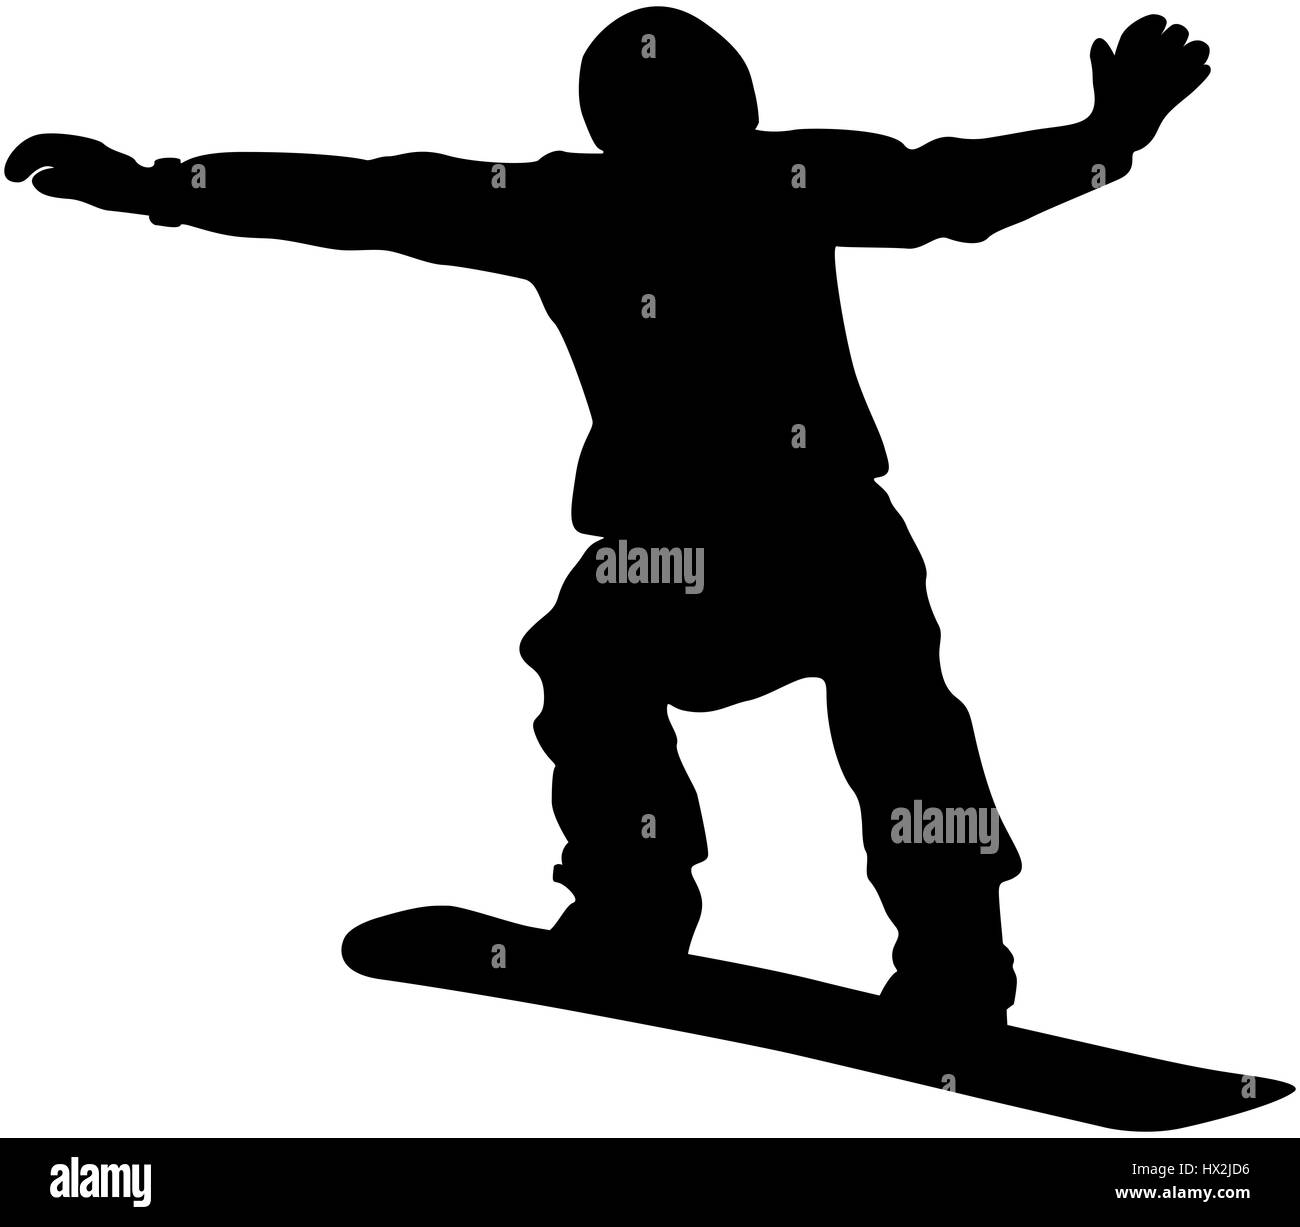 snowboard competition male snowboarder jump black silhouette - Stock Image